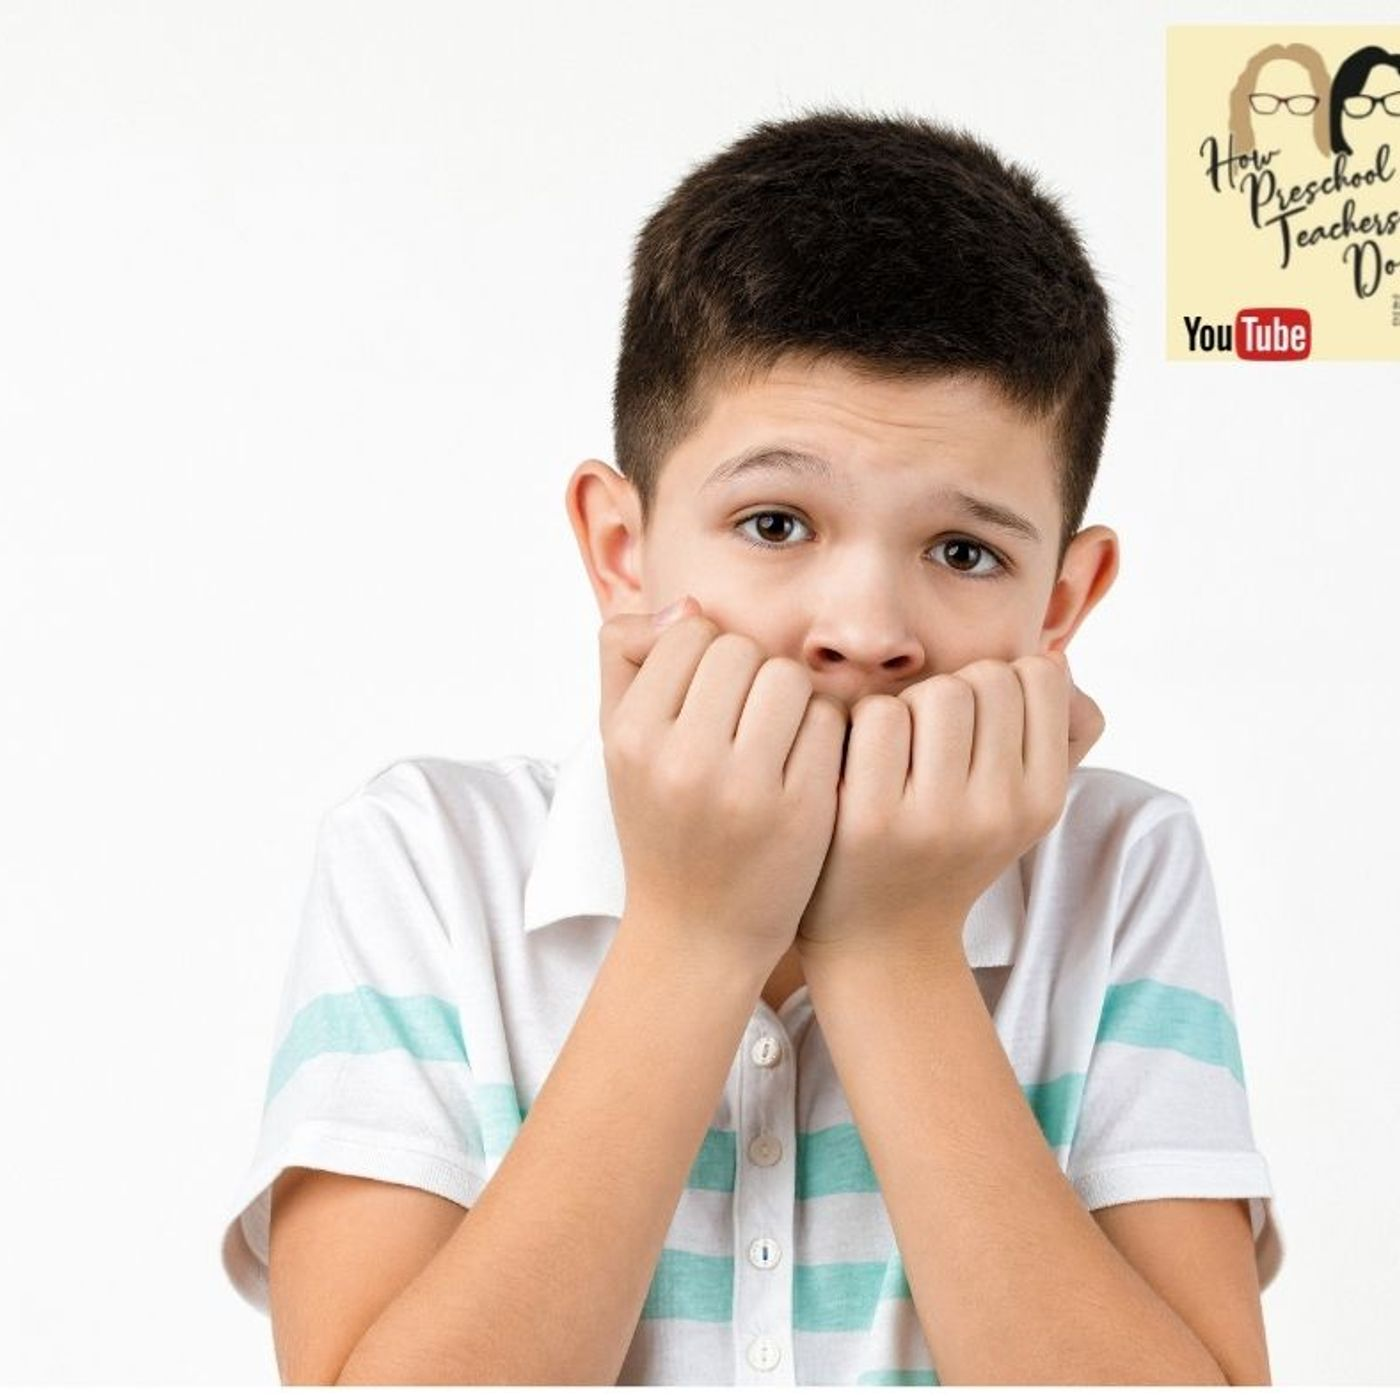 129: Helping Kids with End of Year Anxiety